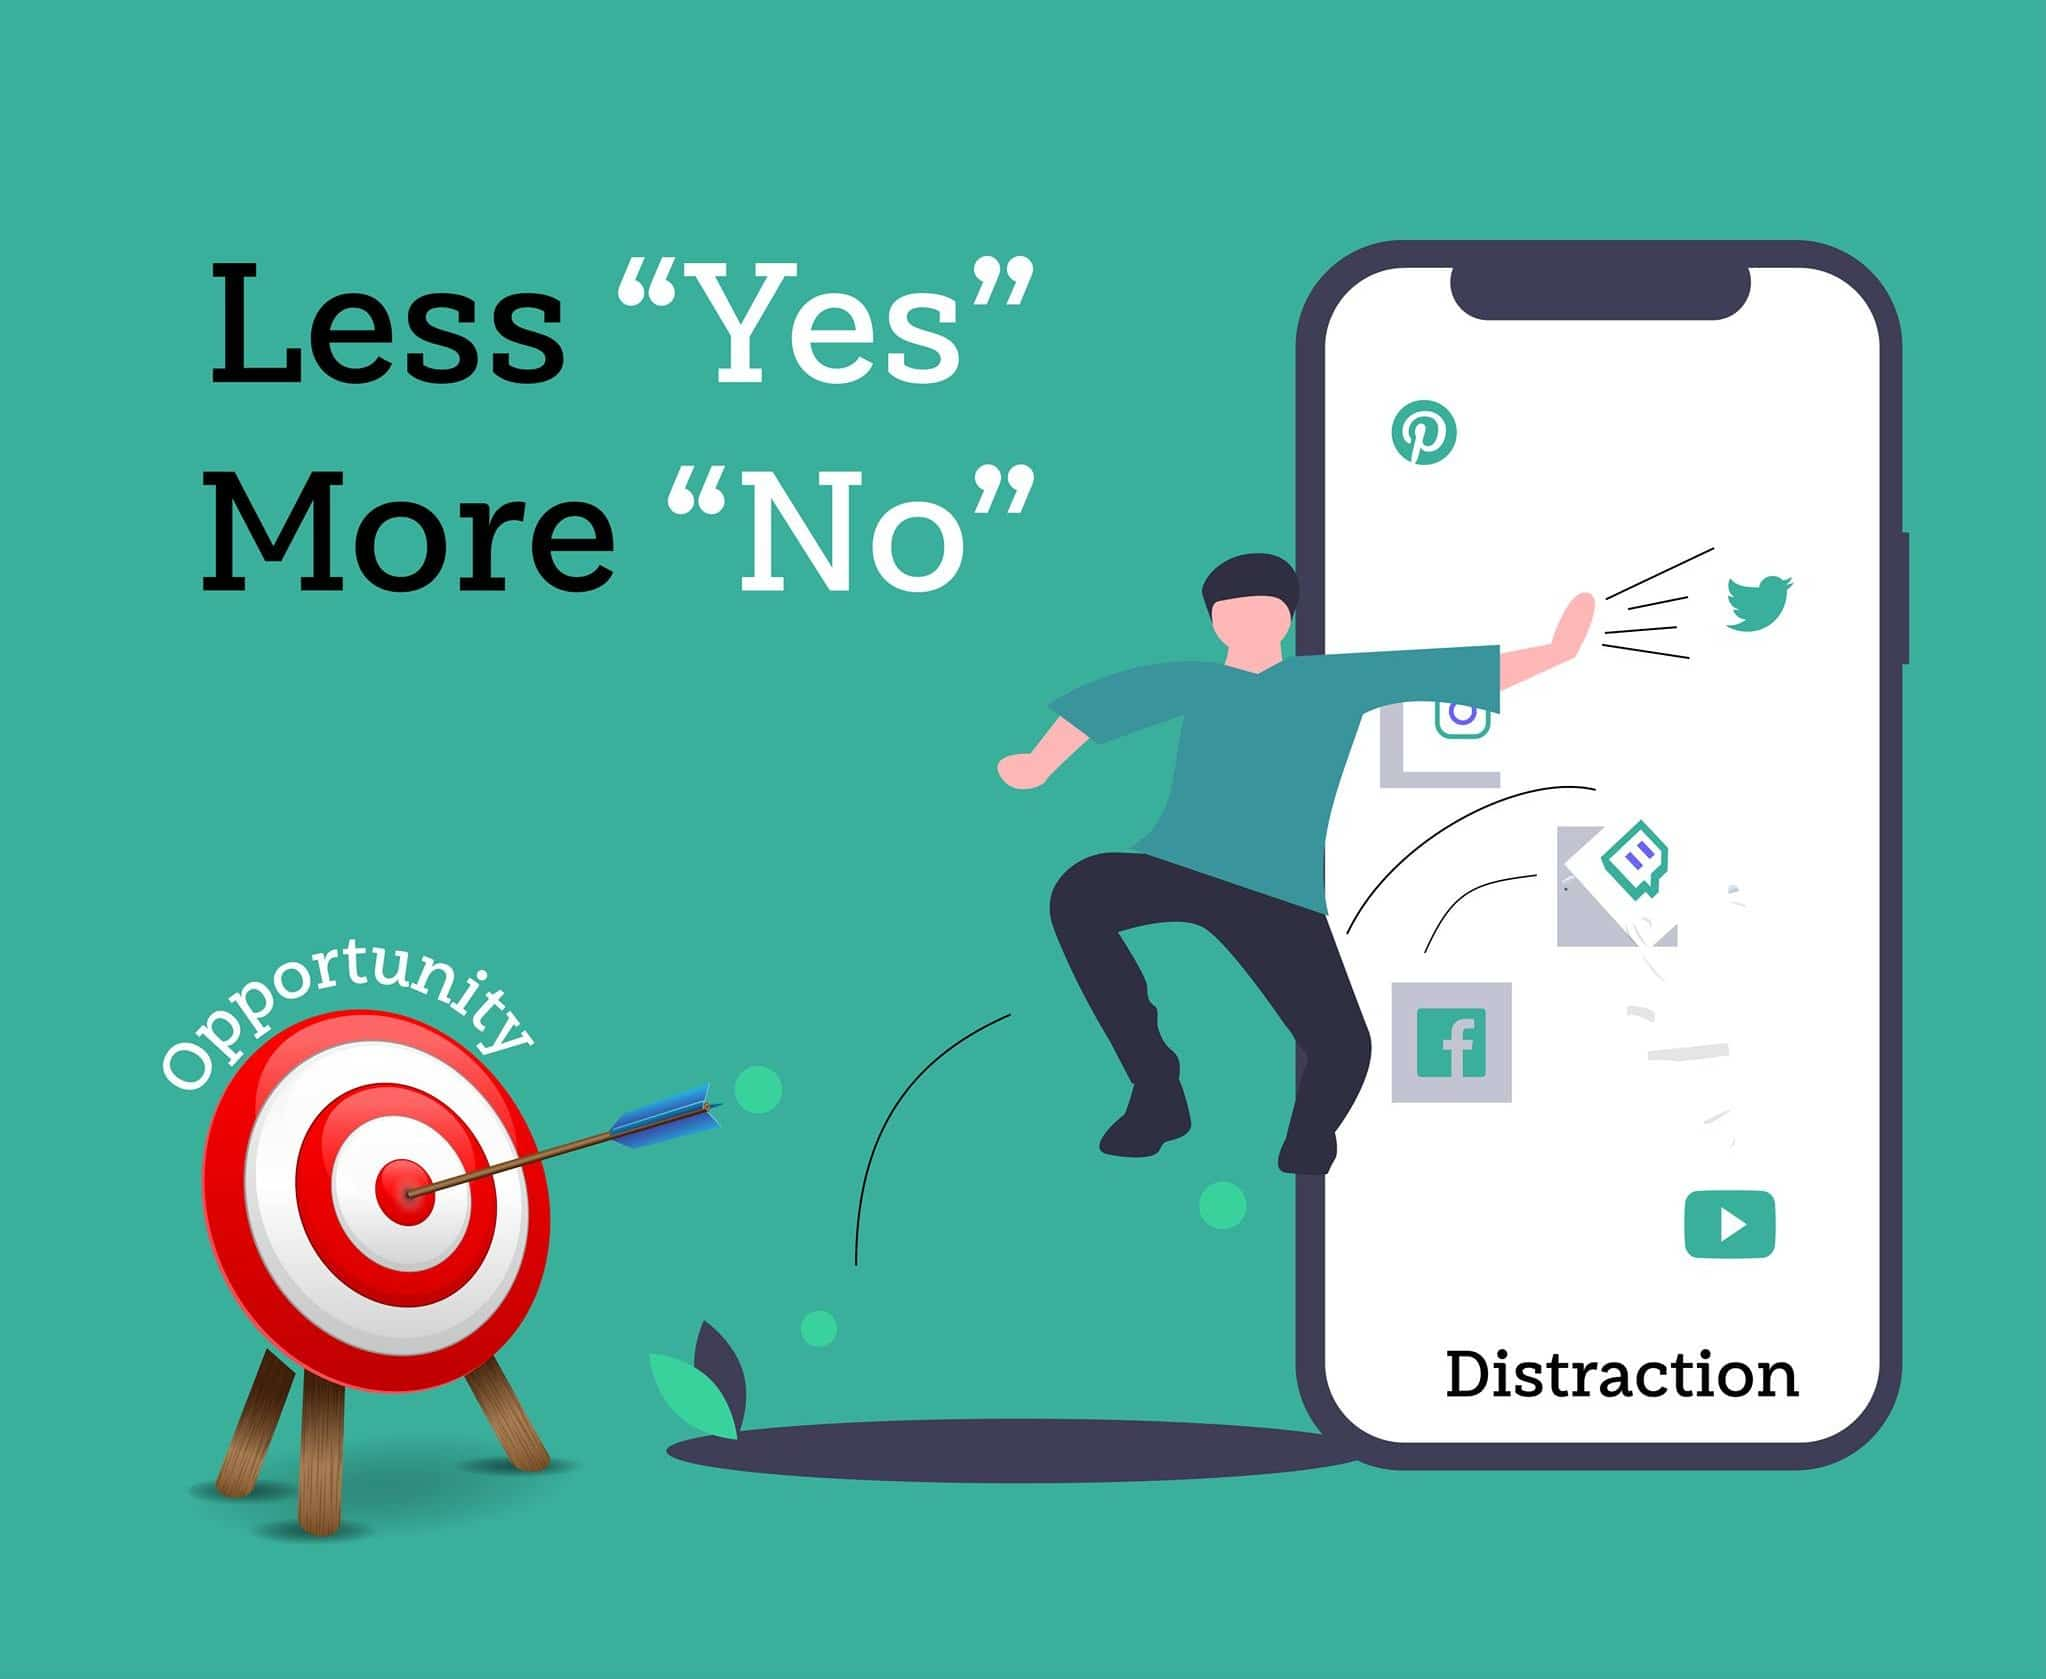 Less Yes More No